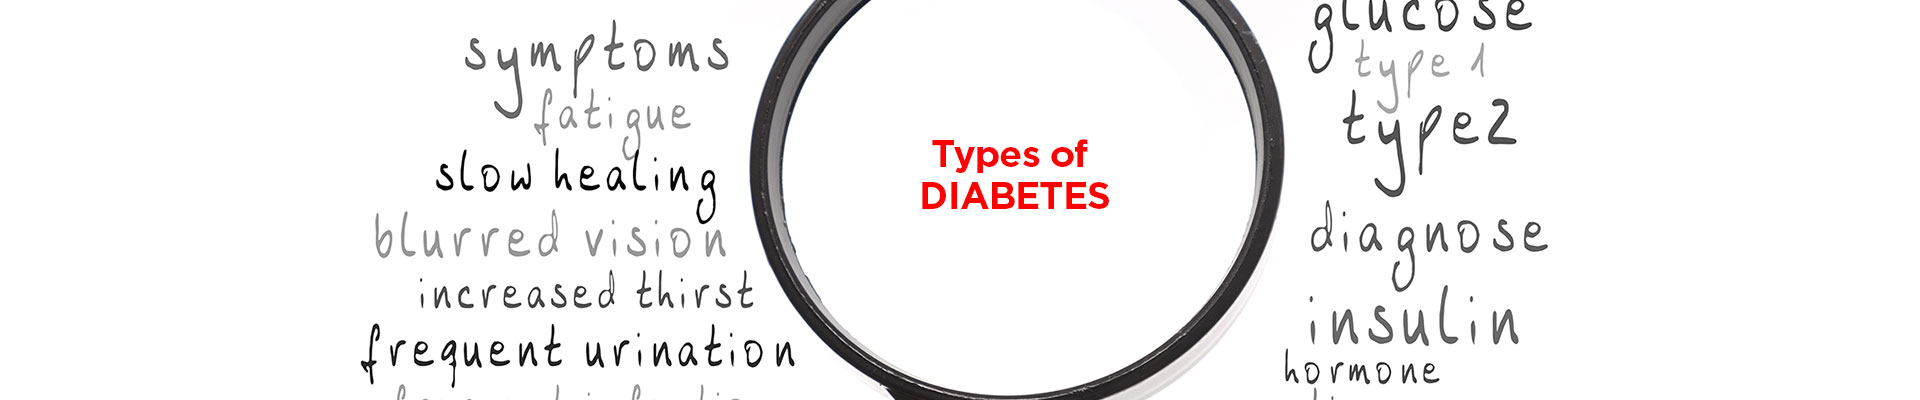 types-of-diabetes